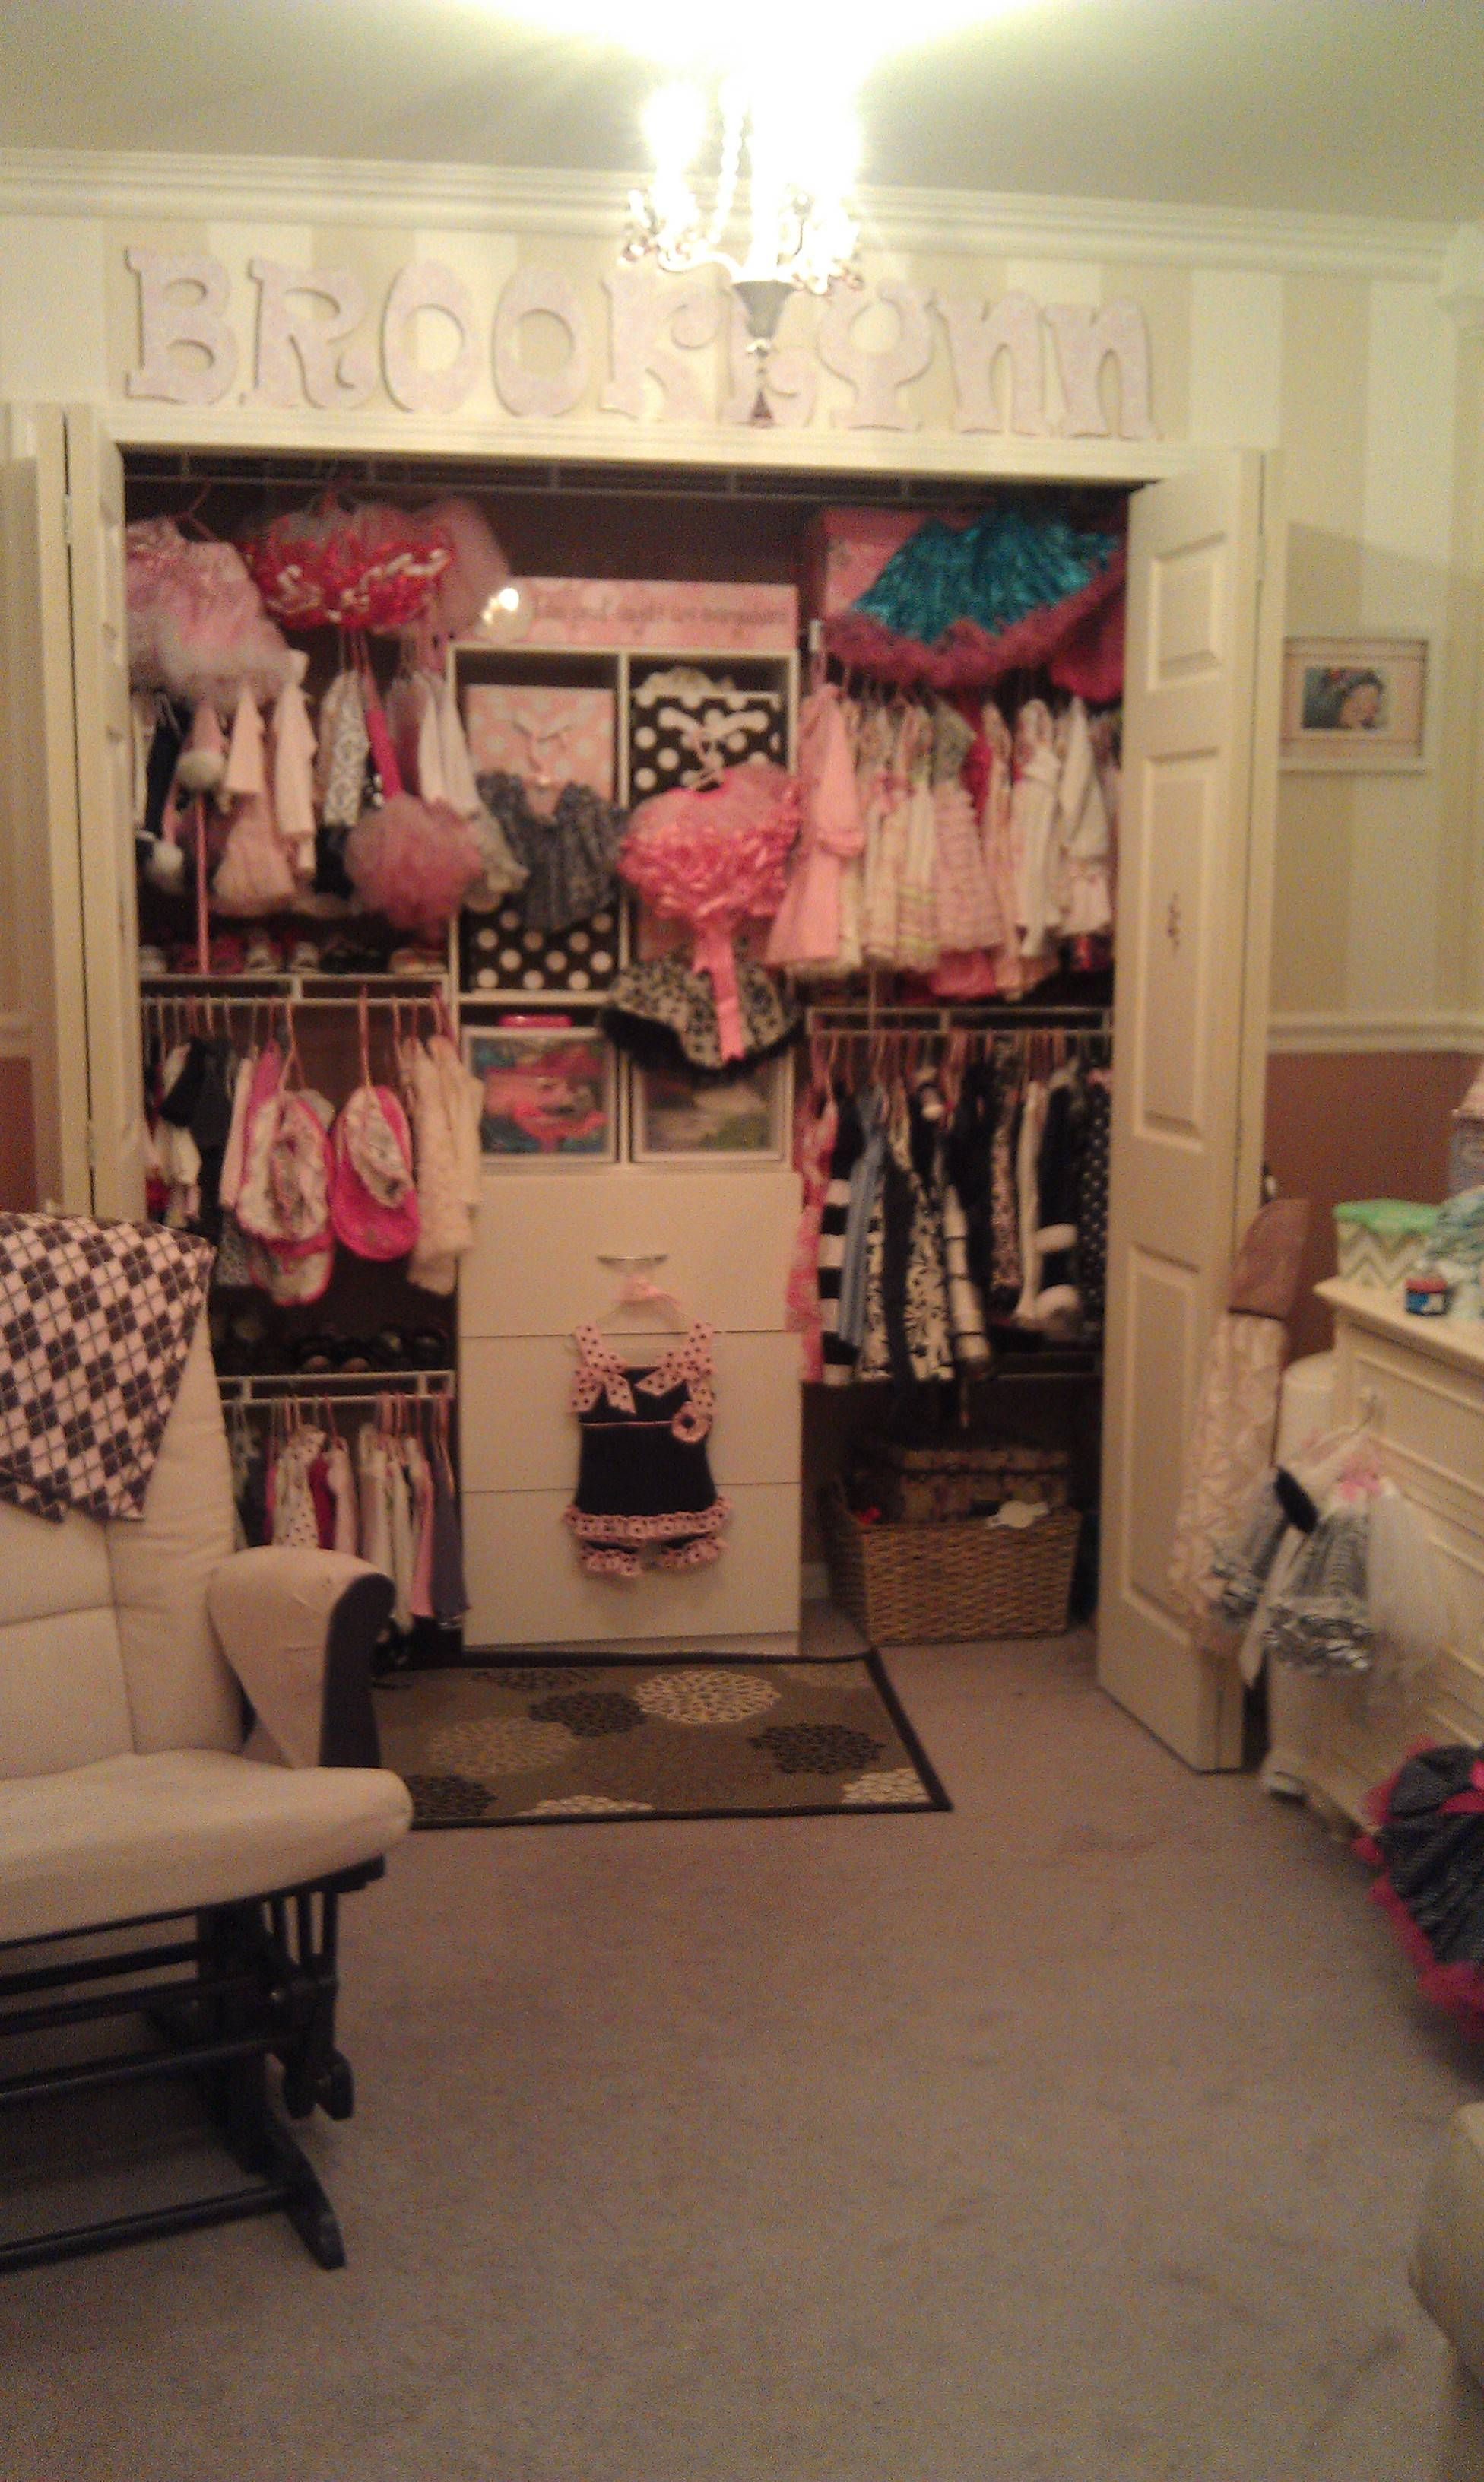 portfolio closet reading beoregonized rock wanted display com pretty books area a music this i ponies nook new legos baby her of organized cool room collection and little in to closets girl